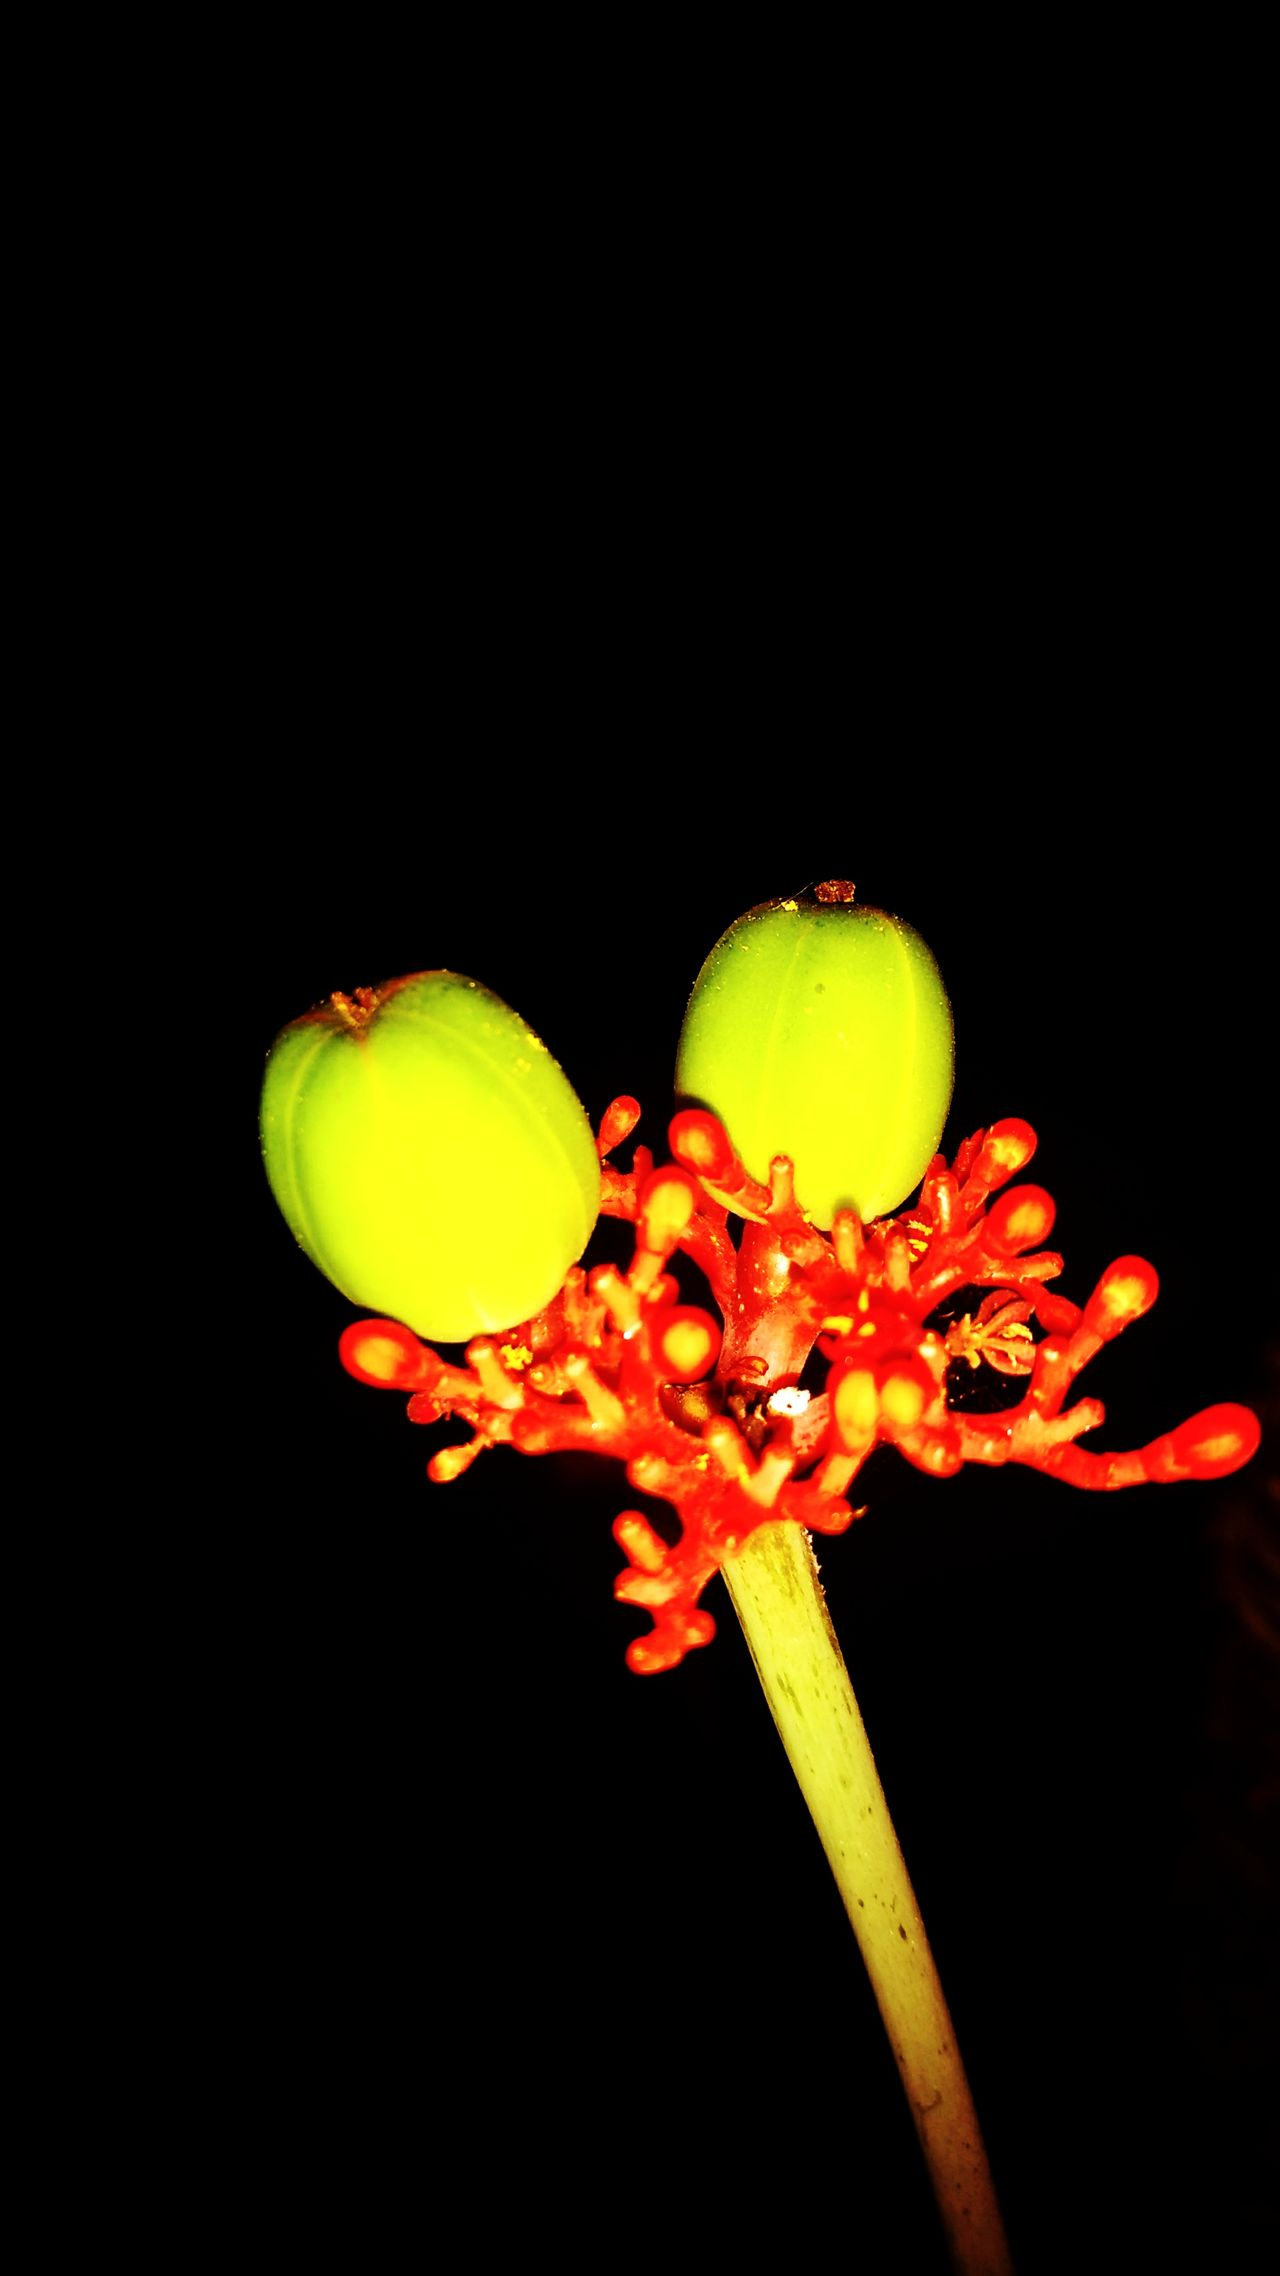 Black Background Close-up No People Outdoors Growth Plant Nature Green Mobile Photography Moto G4 Plus Yellow Nightshot Beginning New Life